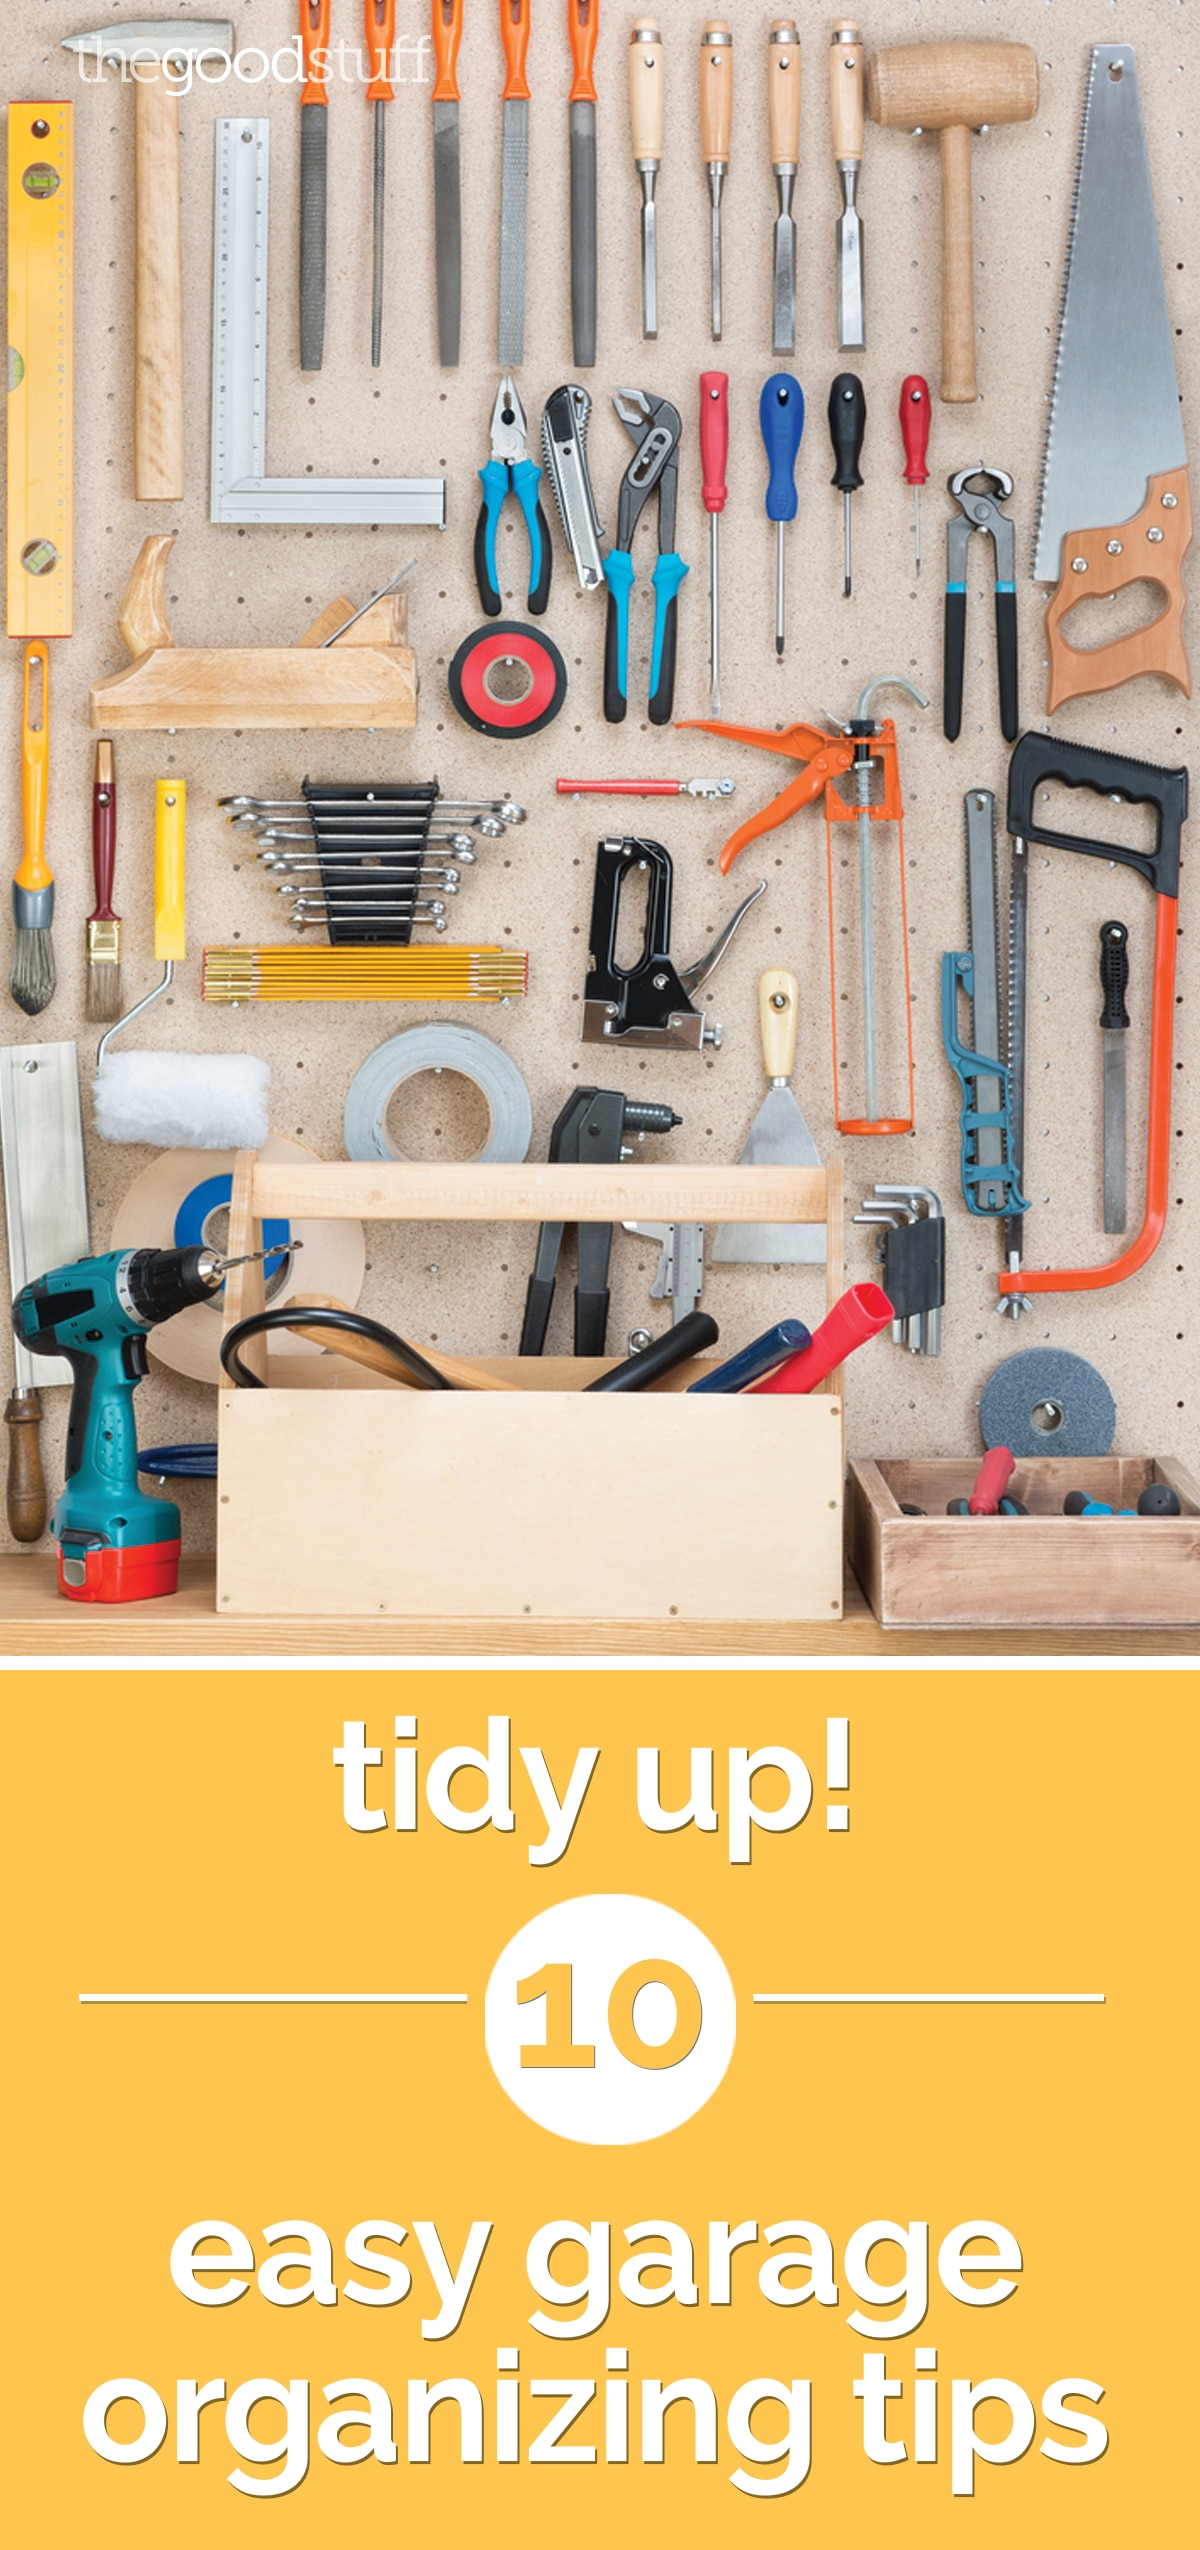 Tidy Up  5 Easy Garage Organizing Tips   thegoodstuff. Tidy Up  5 Easy Garage Organizing Tips   thegoodstuff